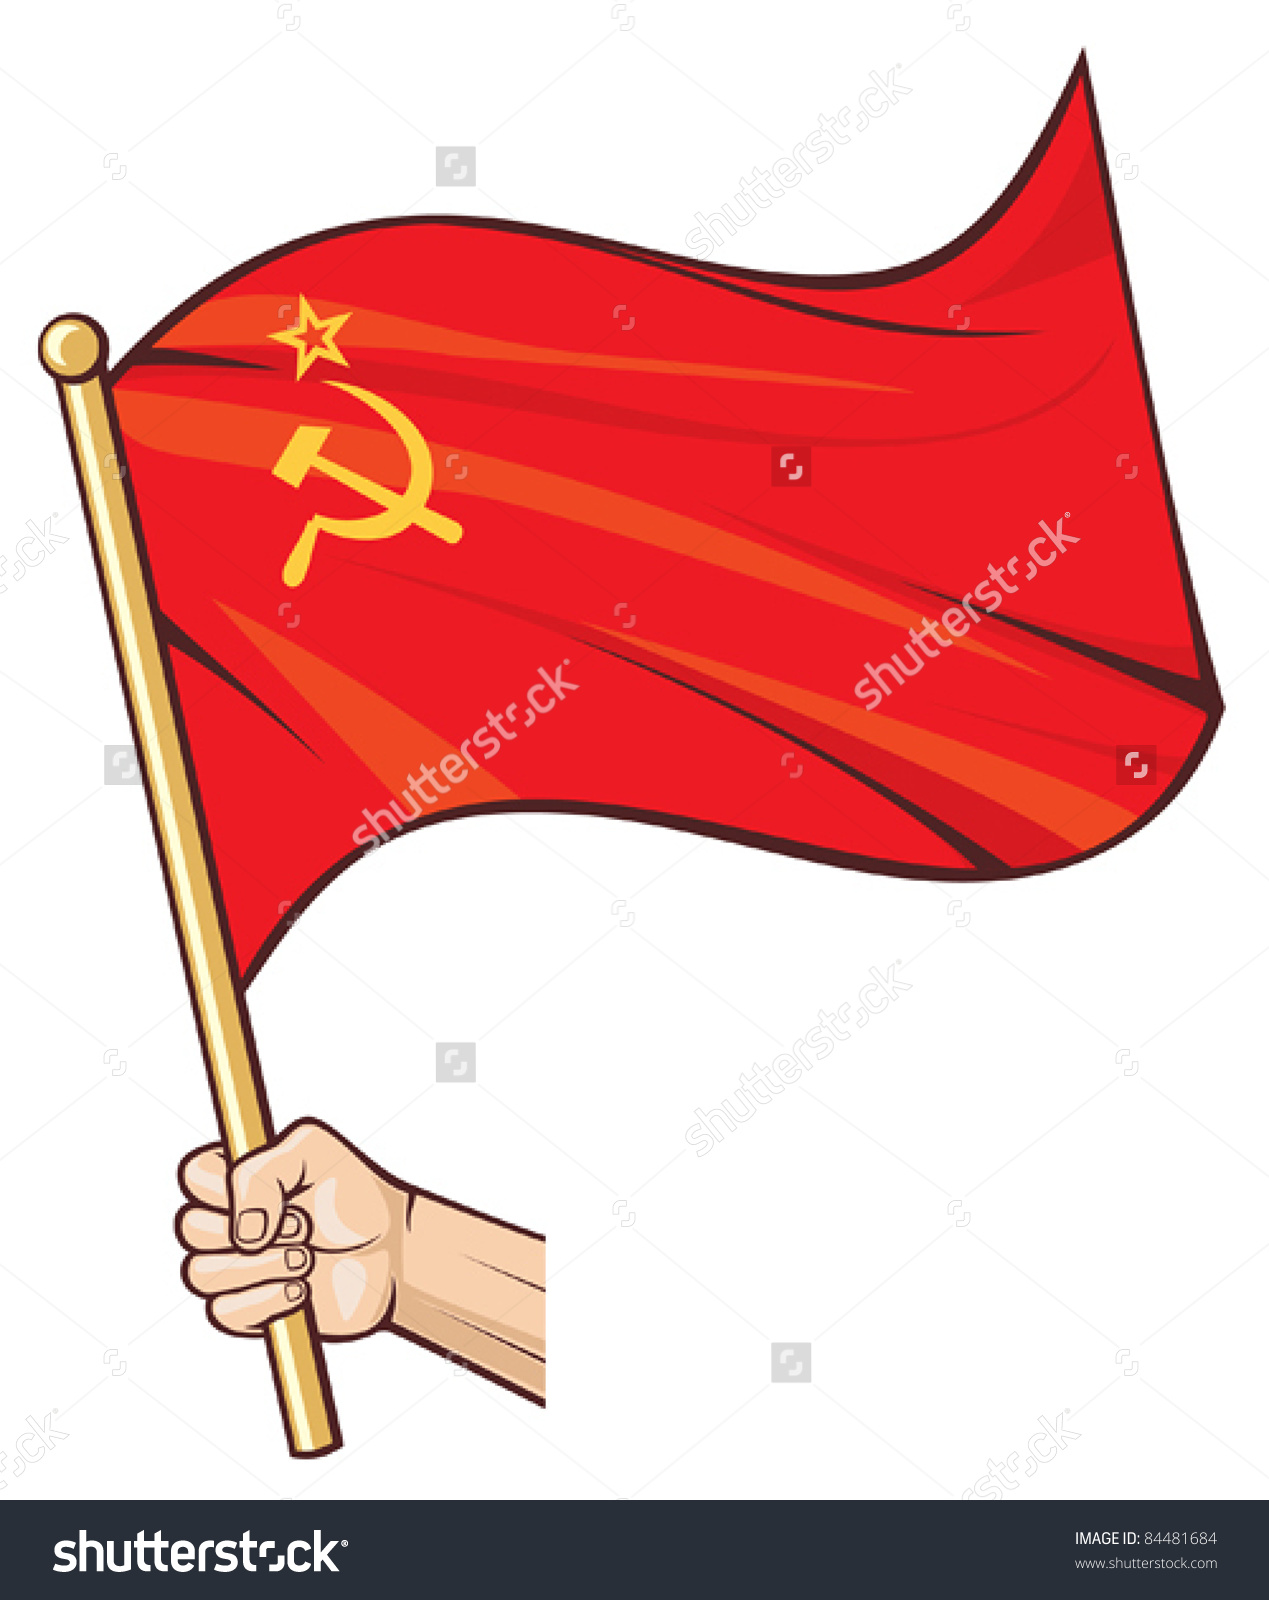 Clipart of soviet union flag in black and white.